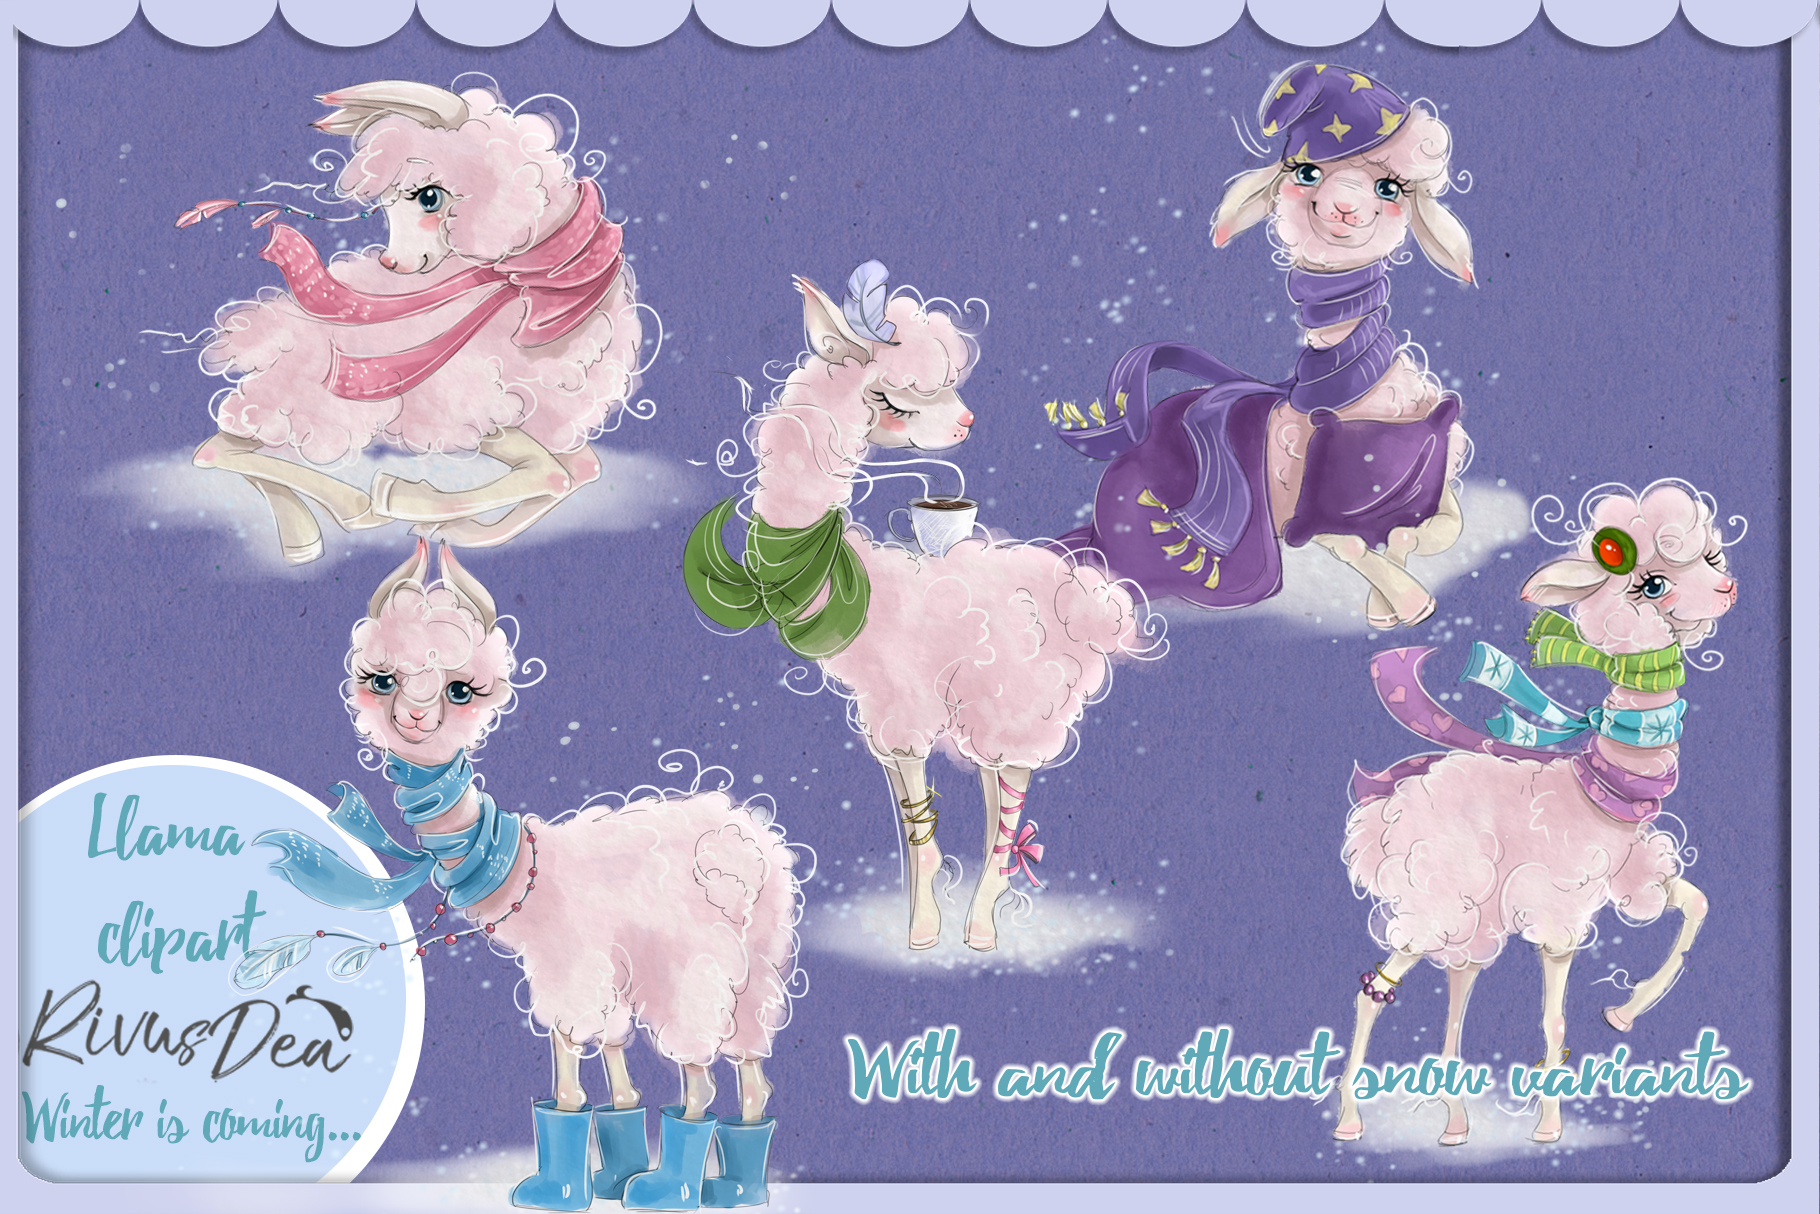 Cute llama alpaca clipart kit baby animals example image 2